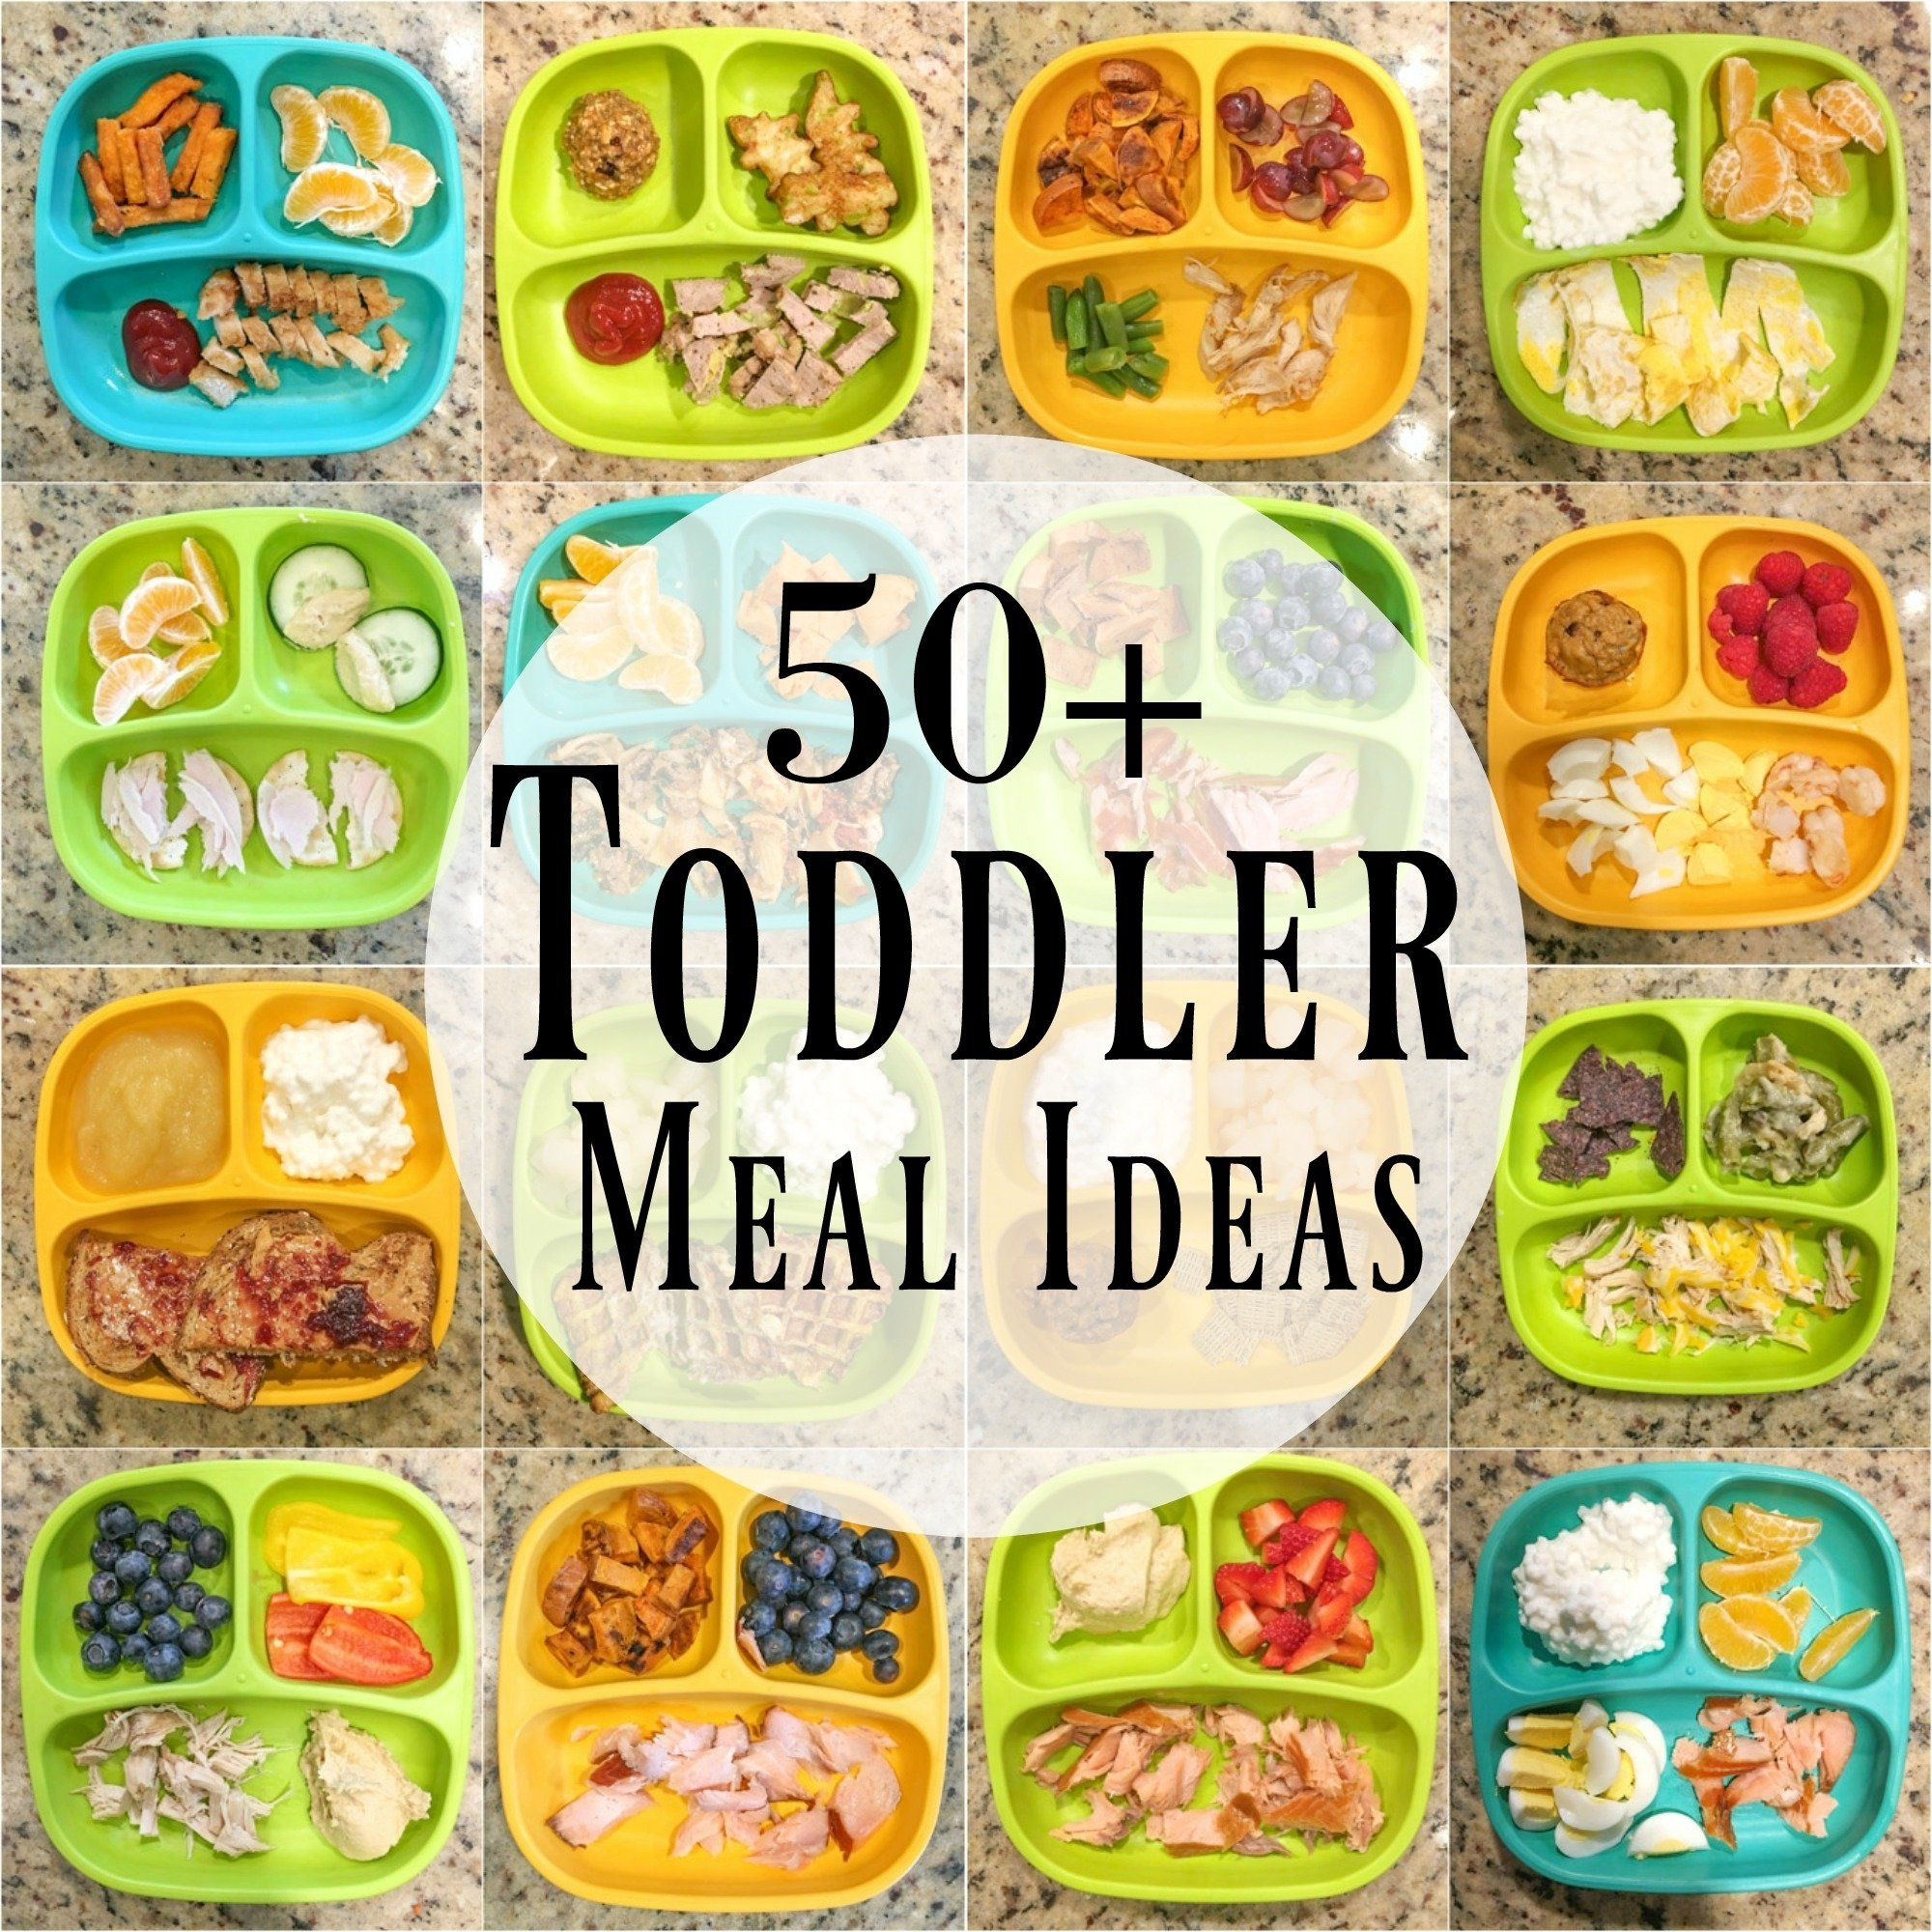 10 Attractive Healthy Lunch Ideas For Toddlers 50 healthy toddler meal ideas the lean green bean 1 2021